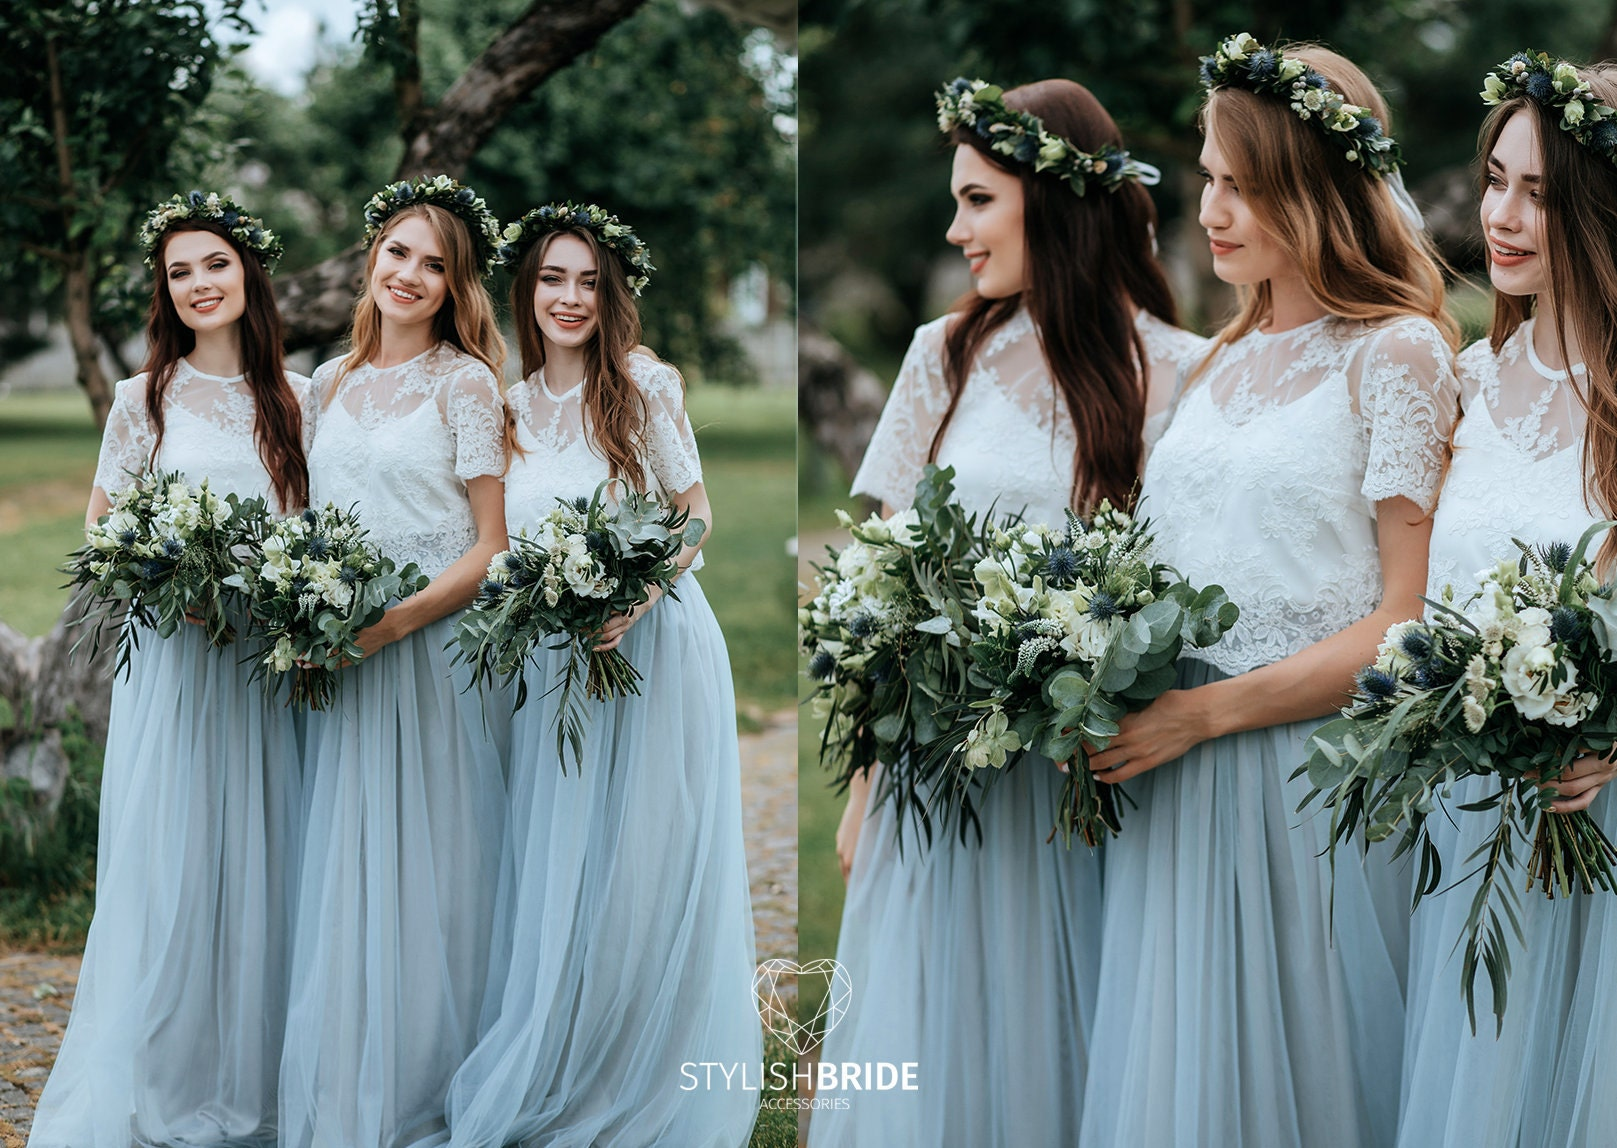 Dusty Blue Boho Bridesmaids Separates Rustic Bridesmaid Dresses, Dusty  Blue Waterfall Tulle Skirt and Belle Lace Top Available in Plus Size